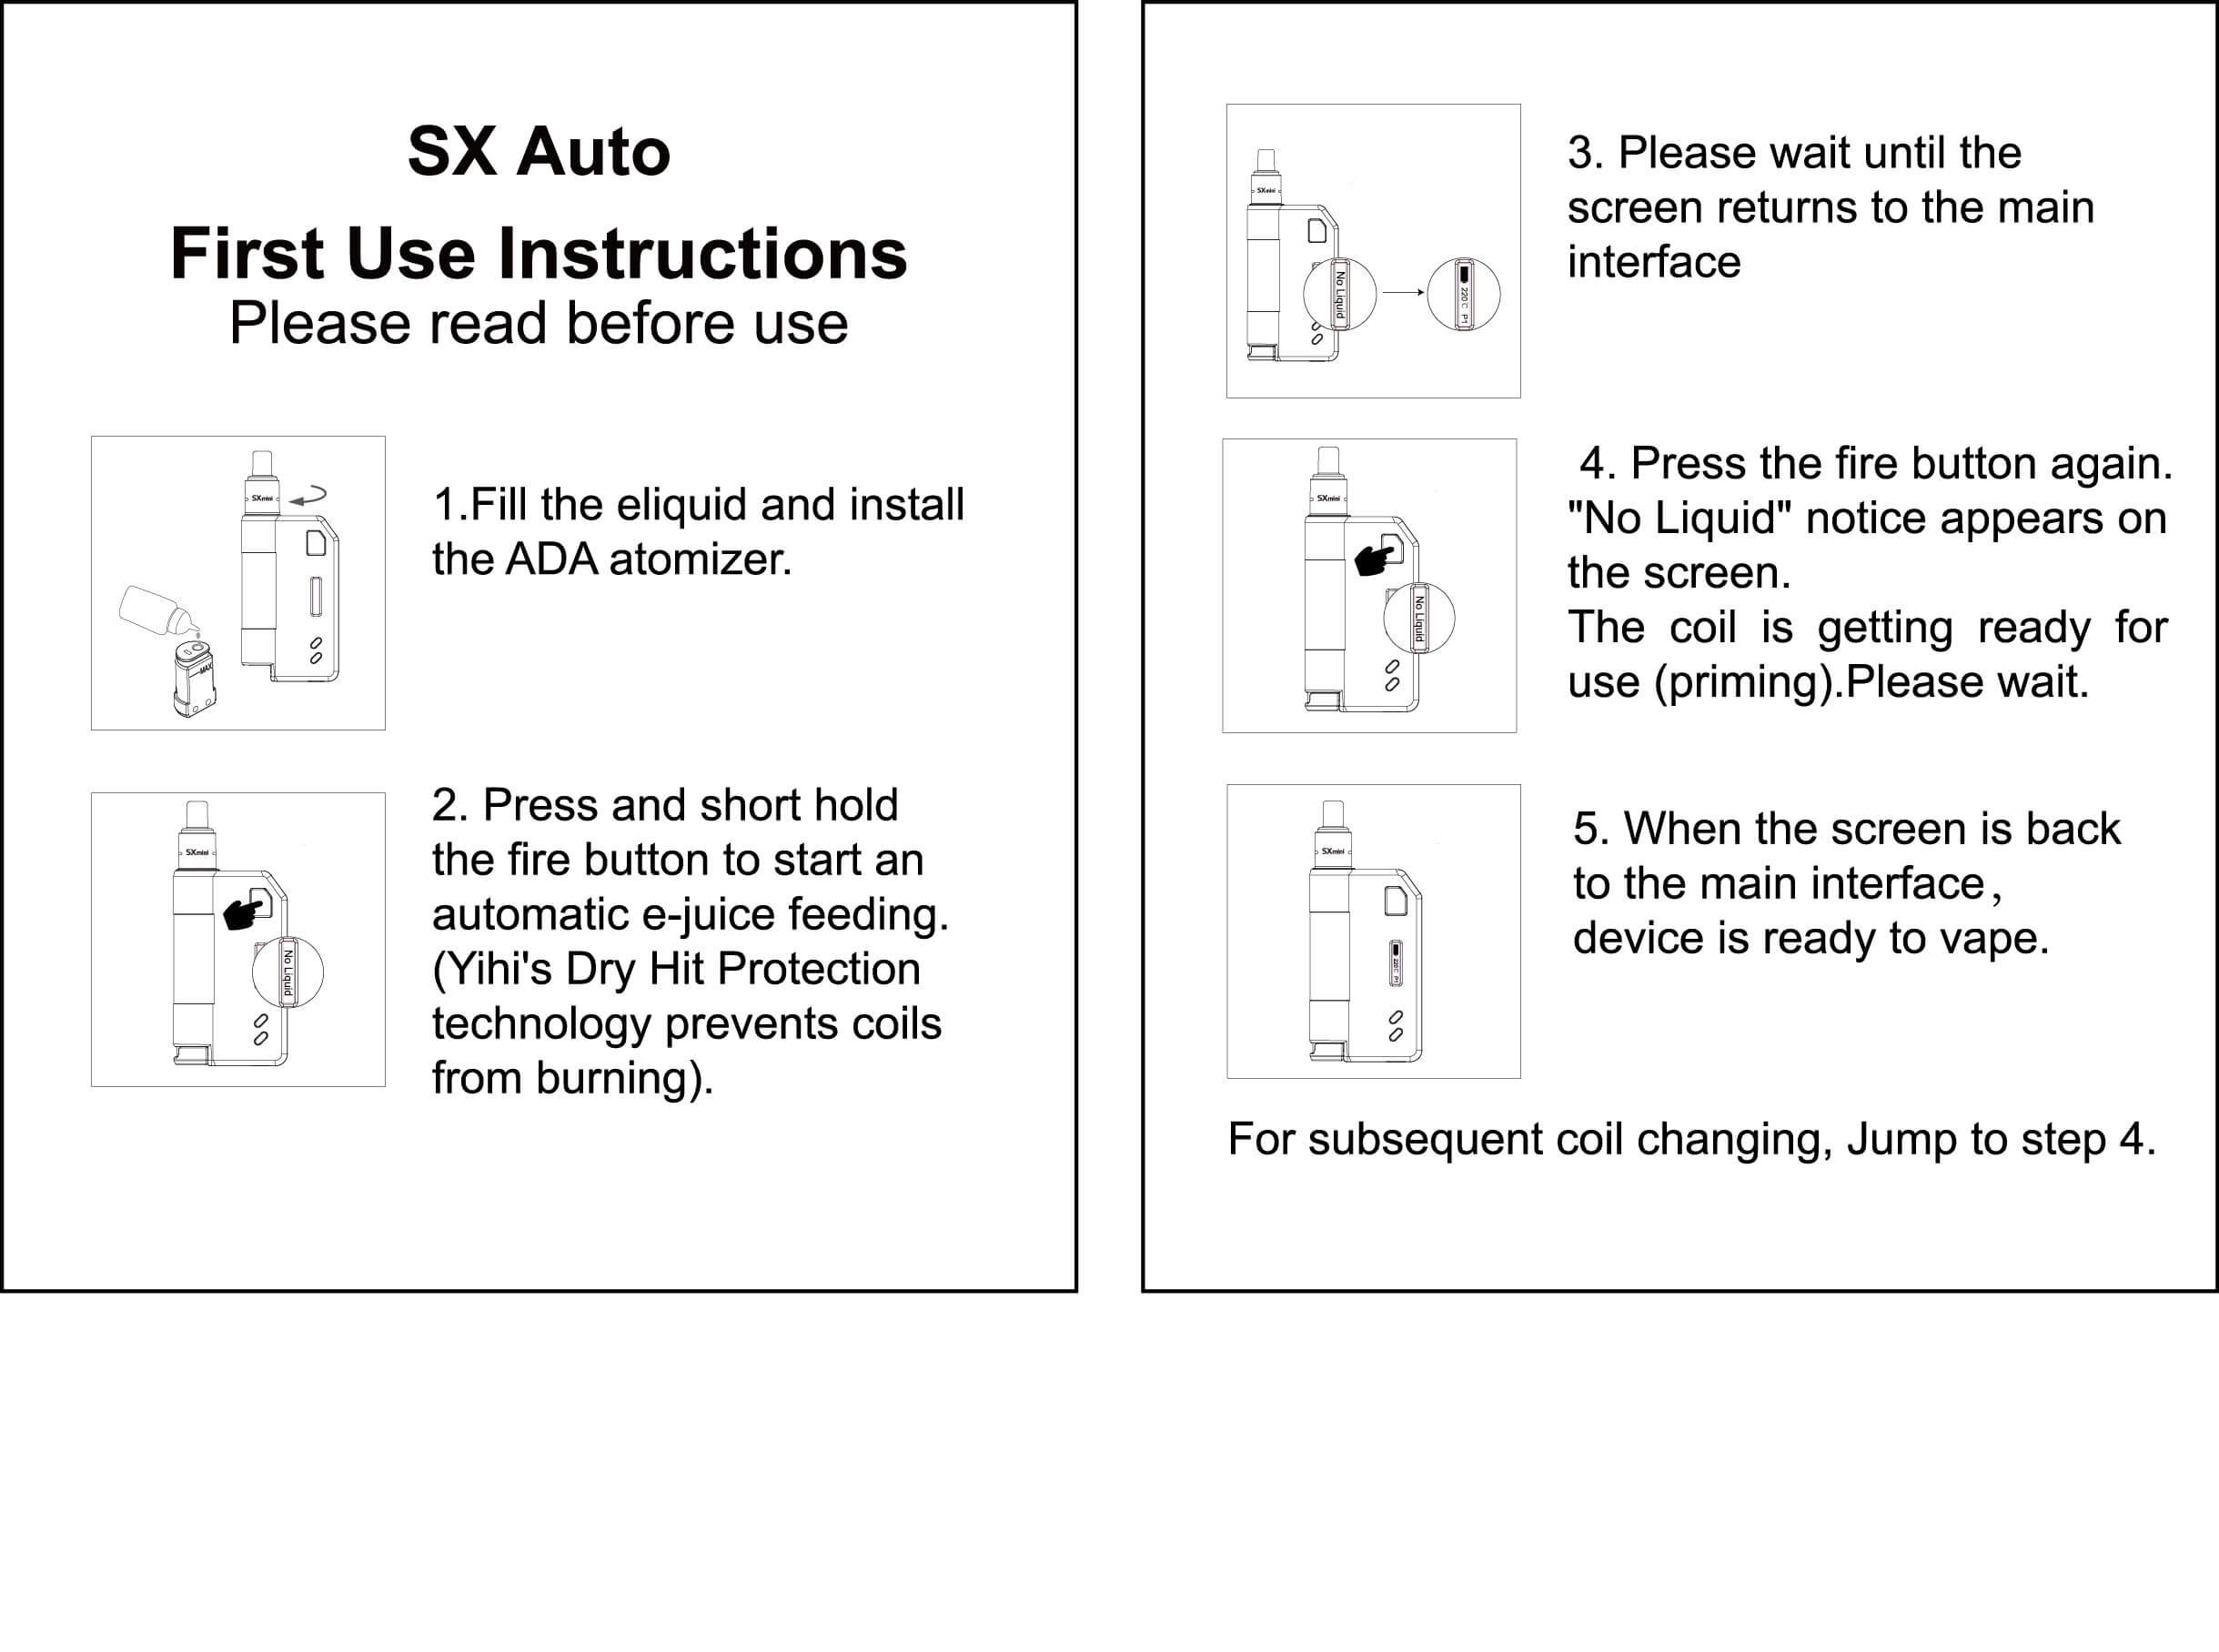 First use instructions of SX Auto.jpg